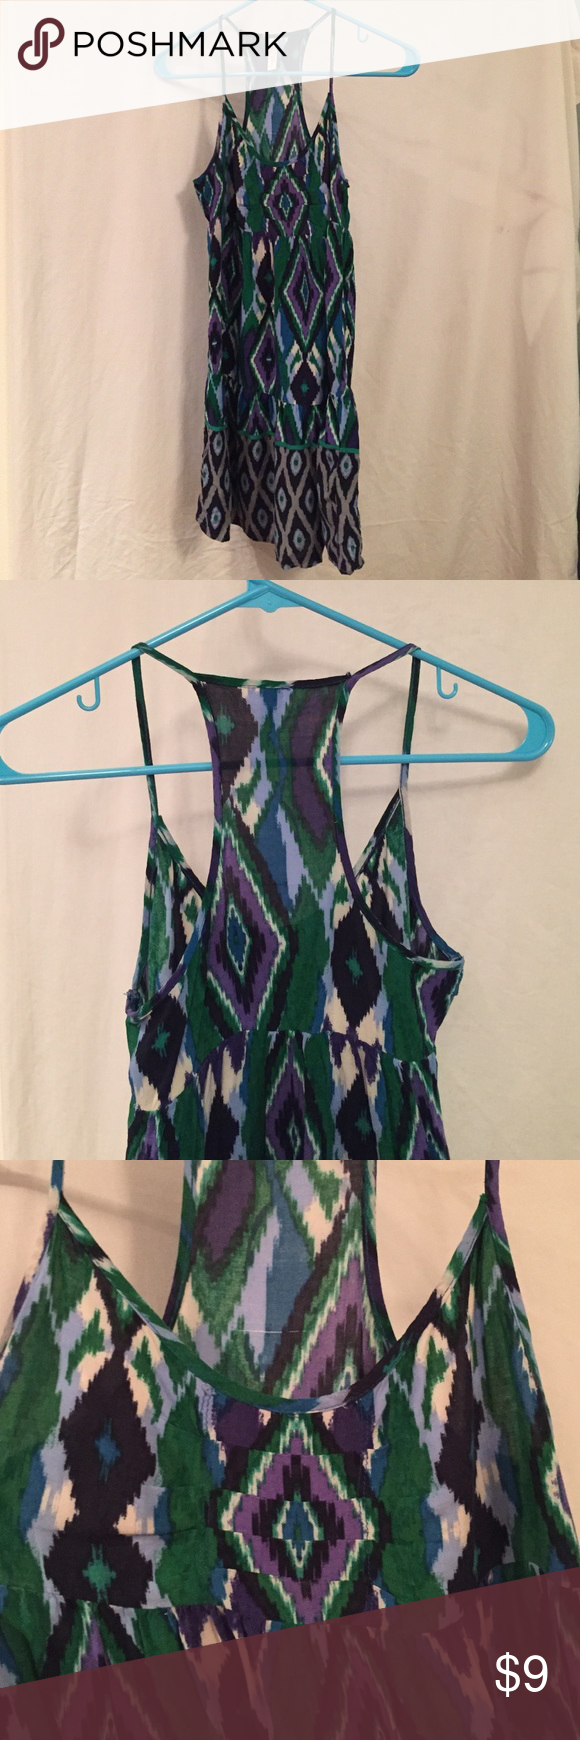 Printed trapeze-style dress Printed dress, trapeze-style neckline with spaghetti straps, emerald green/sky & cobalt blues/royal purple/navy/grey/cream, fits tighter in bust, super cute fit!, Xhilaration brand from Target, size XS Xhilaration Dresses